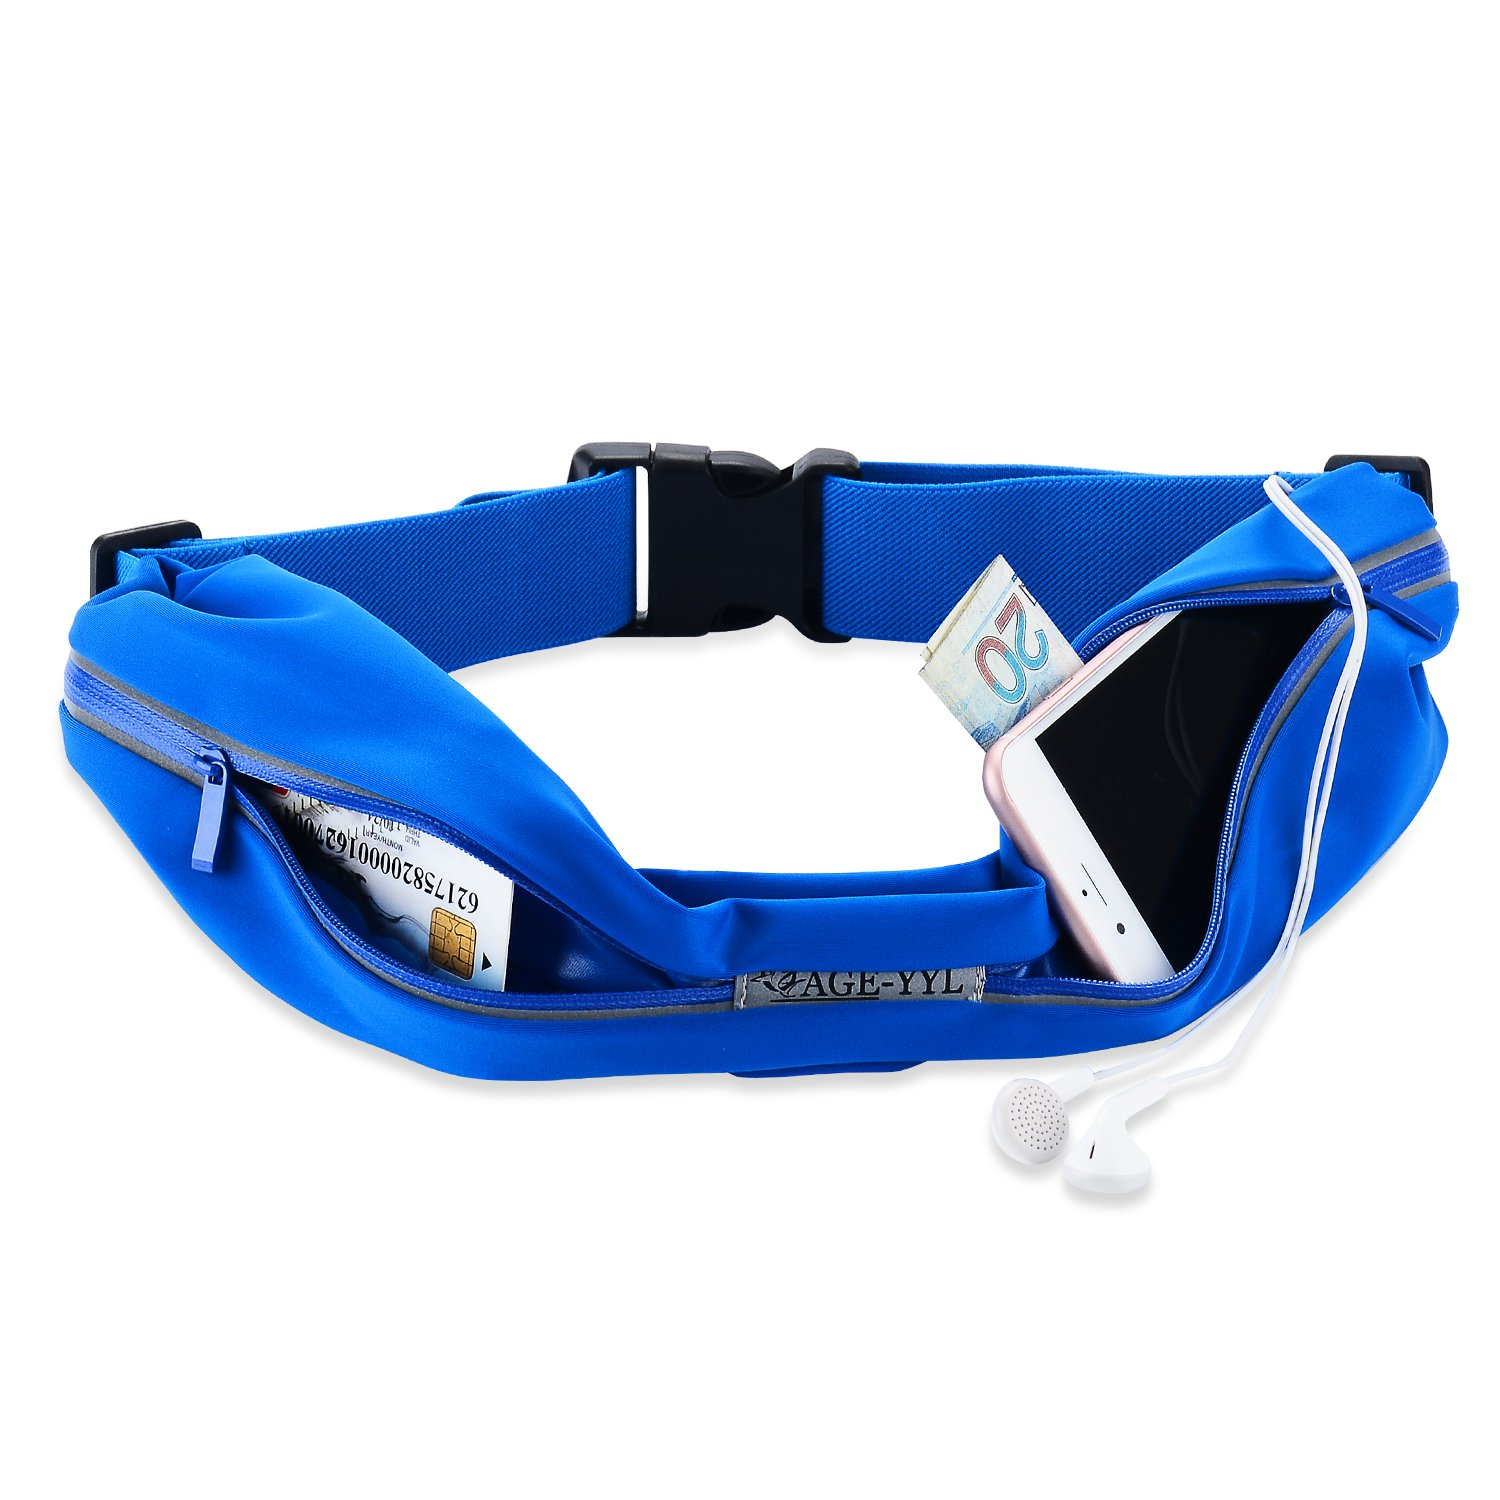 Cage-YYL Running Belt – Reflective Waist Pack – iPhone 6 , 7 , 8 , X Plus Pouch for Runners